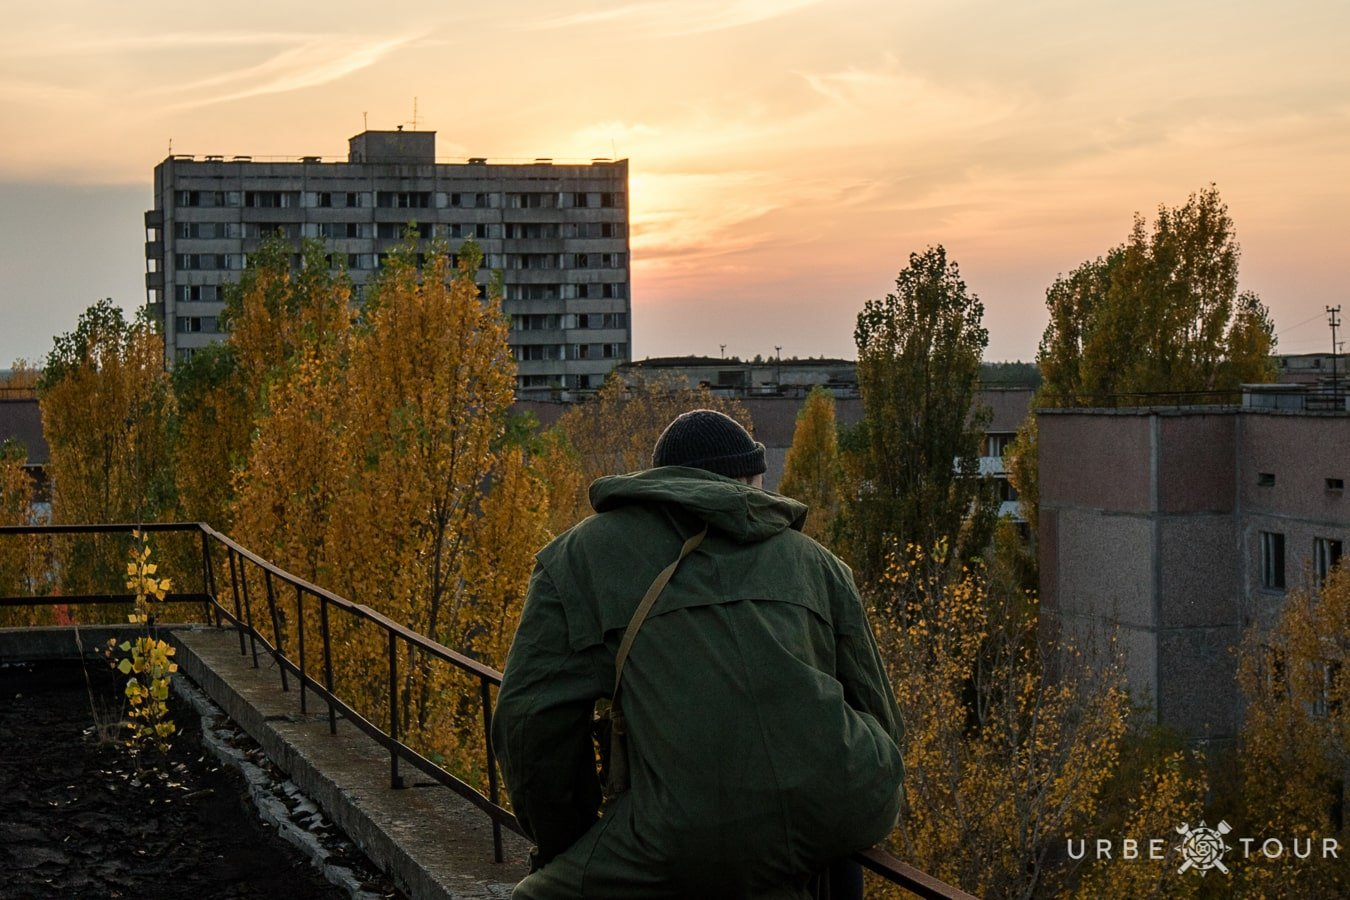 stalker is watching from the rooftop in Kiev